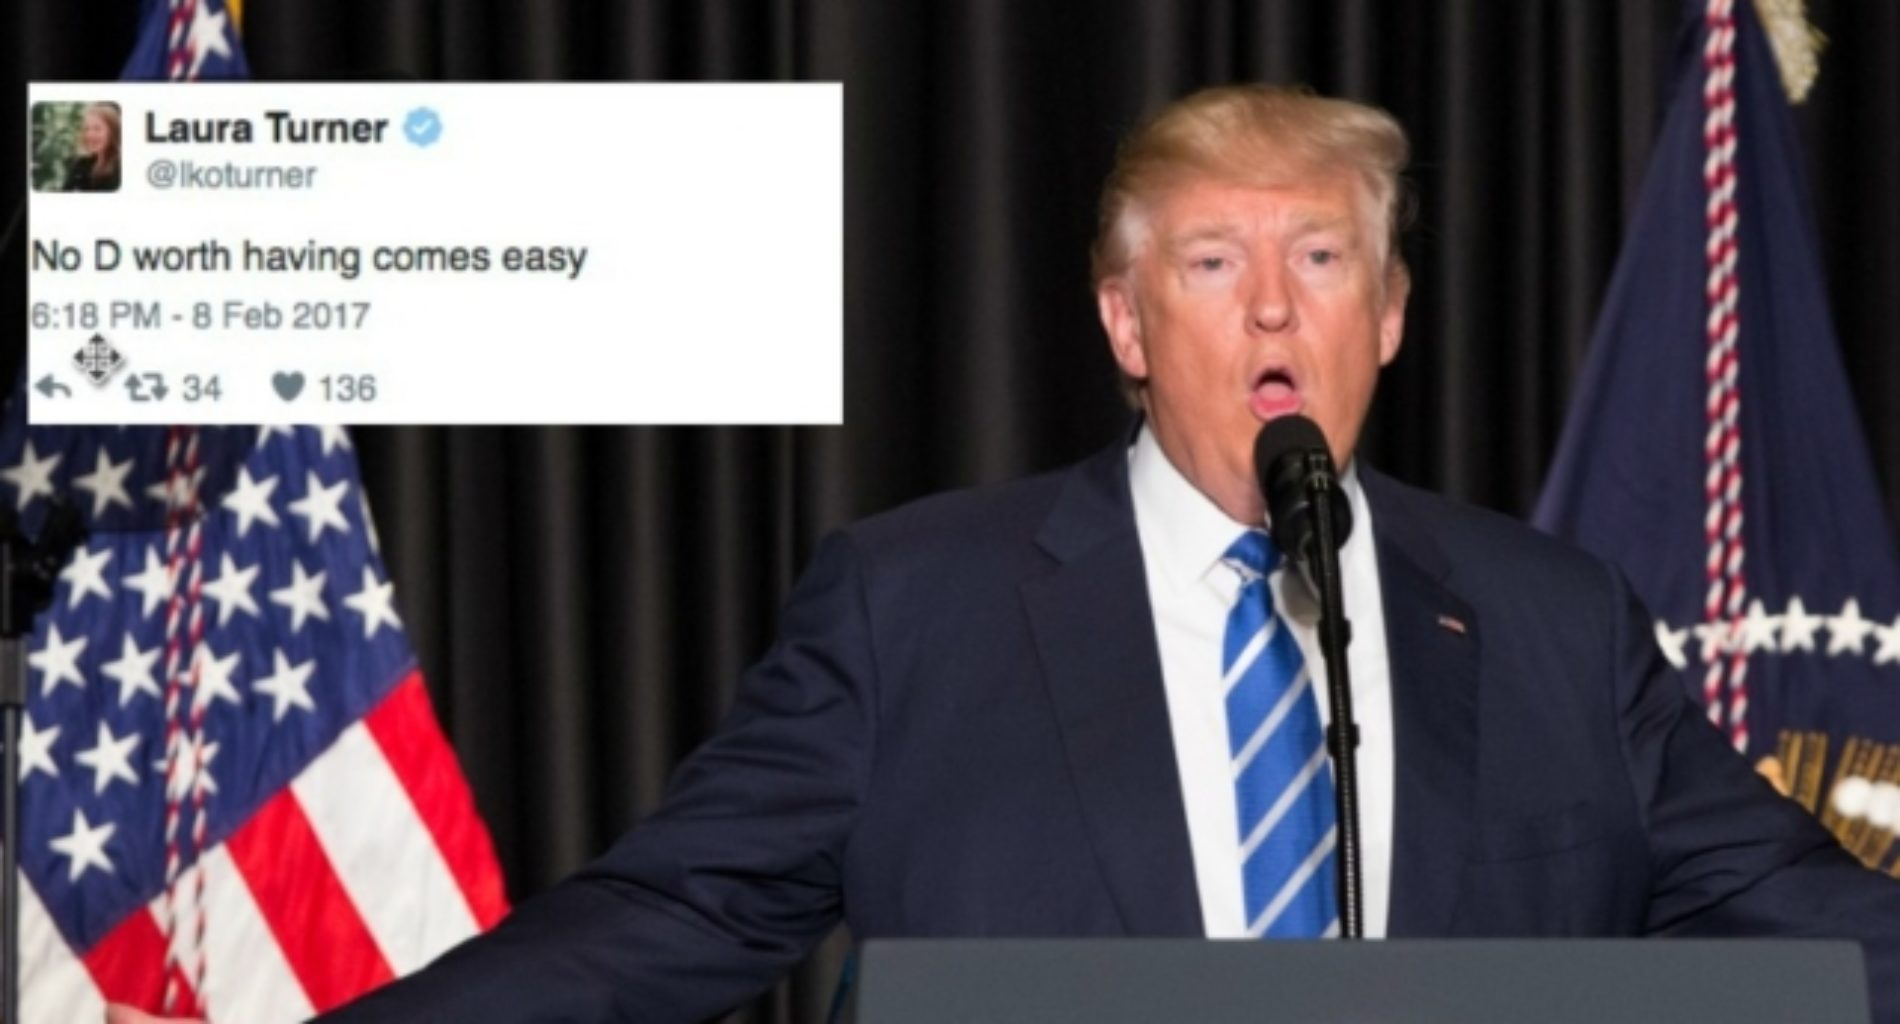 Donald Trump asked Twitter for 'EASY D' and the Internet had a field day